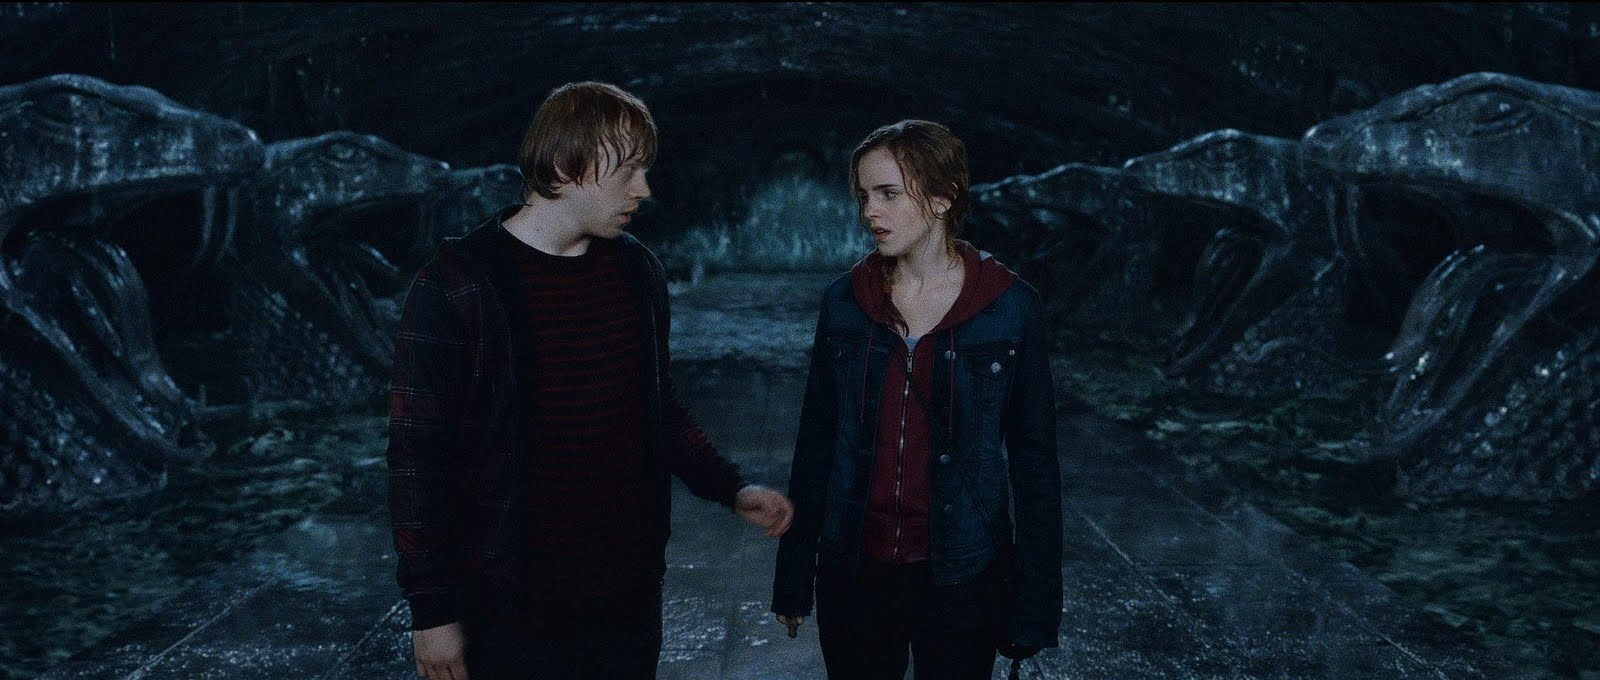 Laura's View: Harry Potter and the Deathly Hallows Part 2